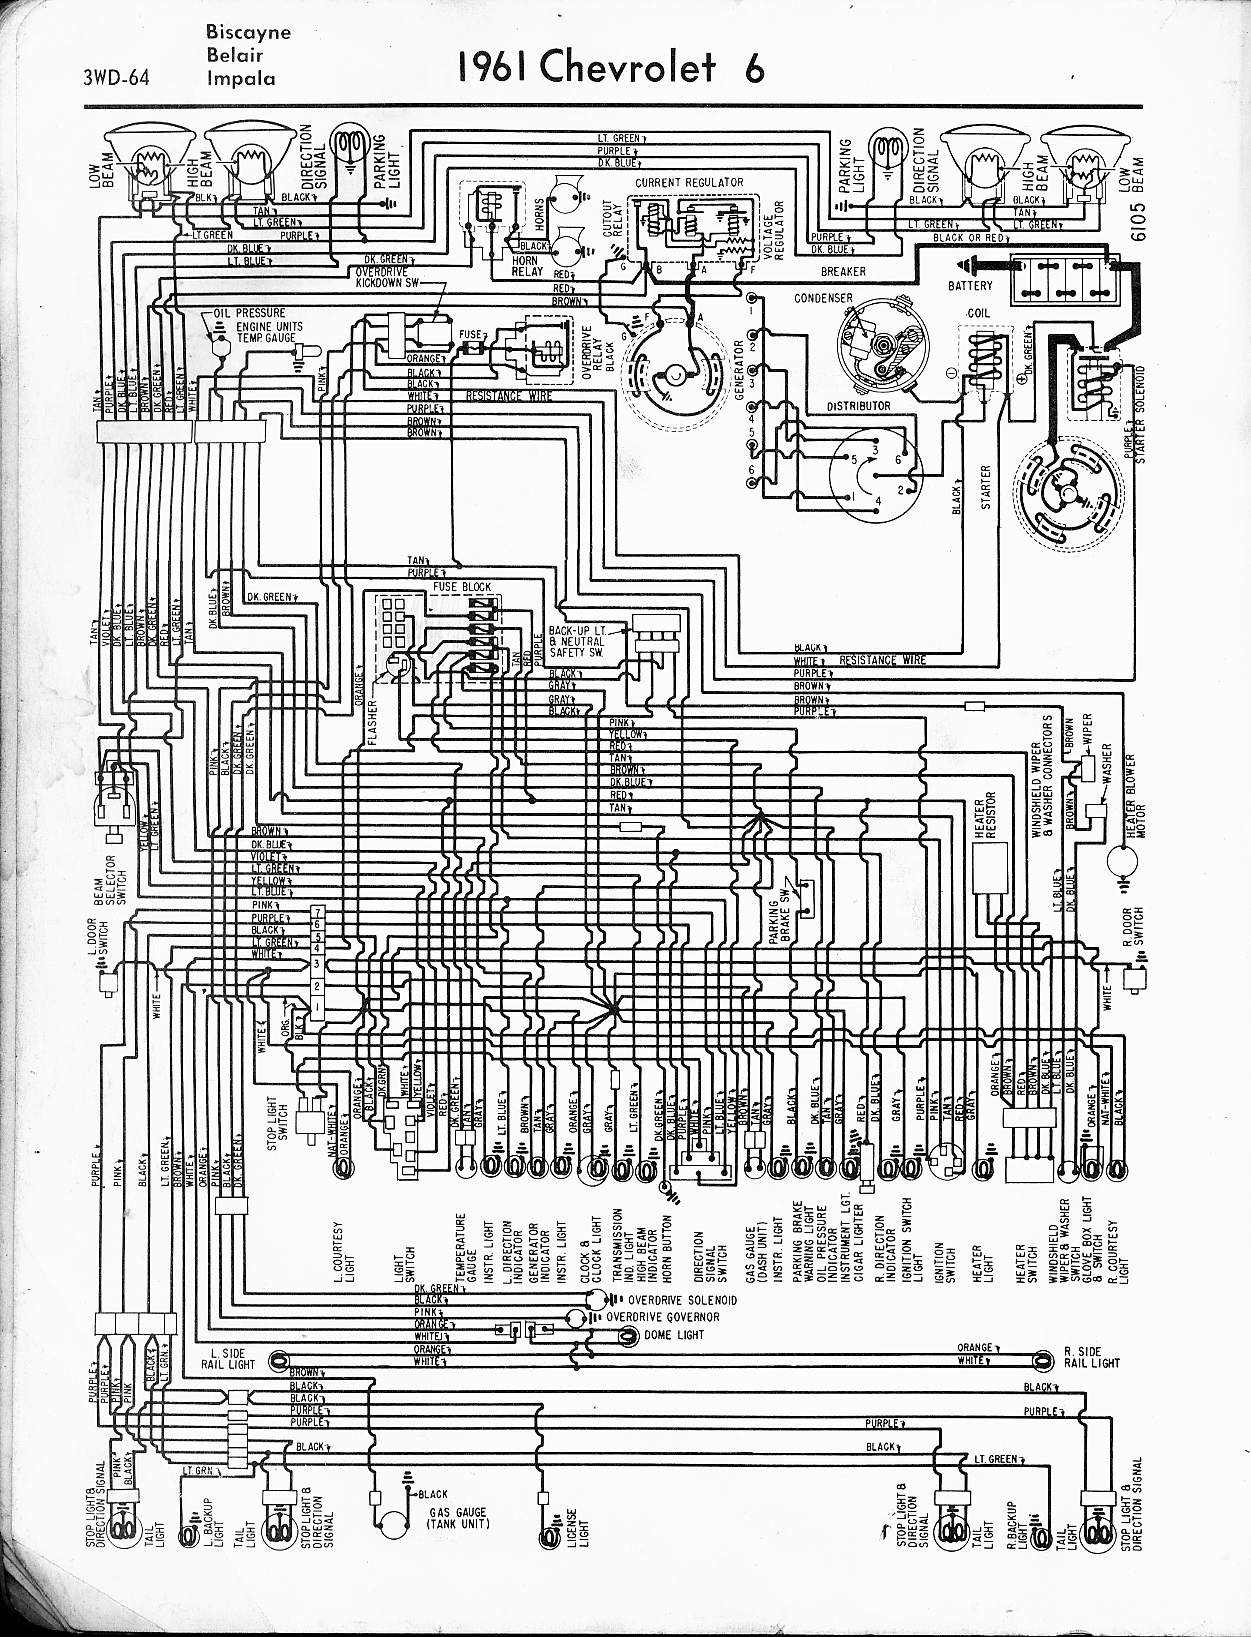 1999 chevy starter wiring diagram 1961 chevy starter wiring diagram #4